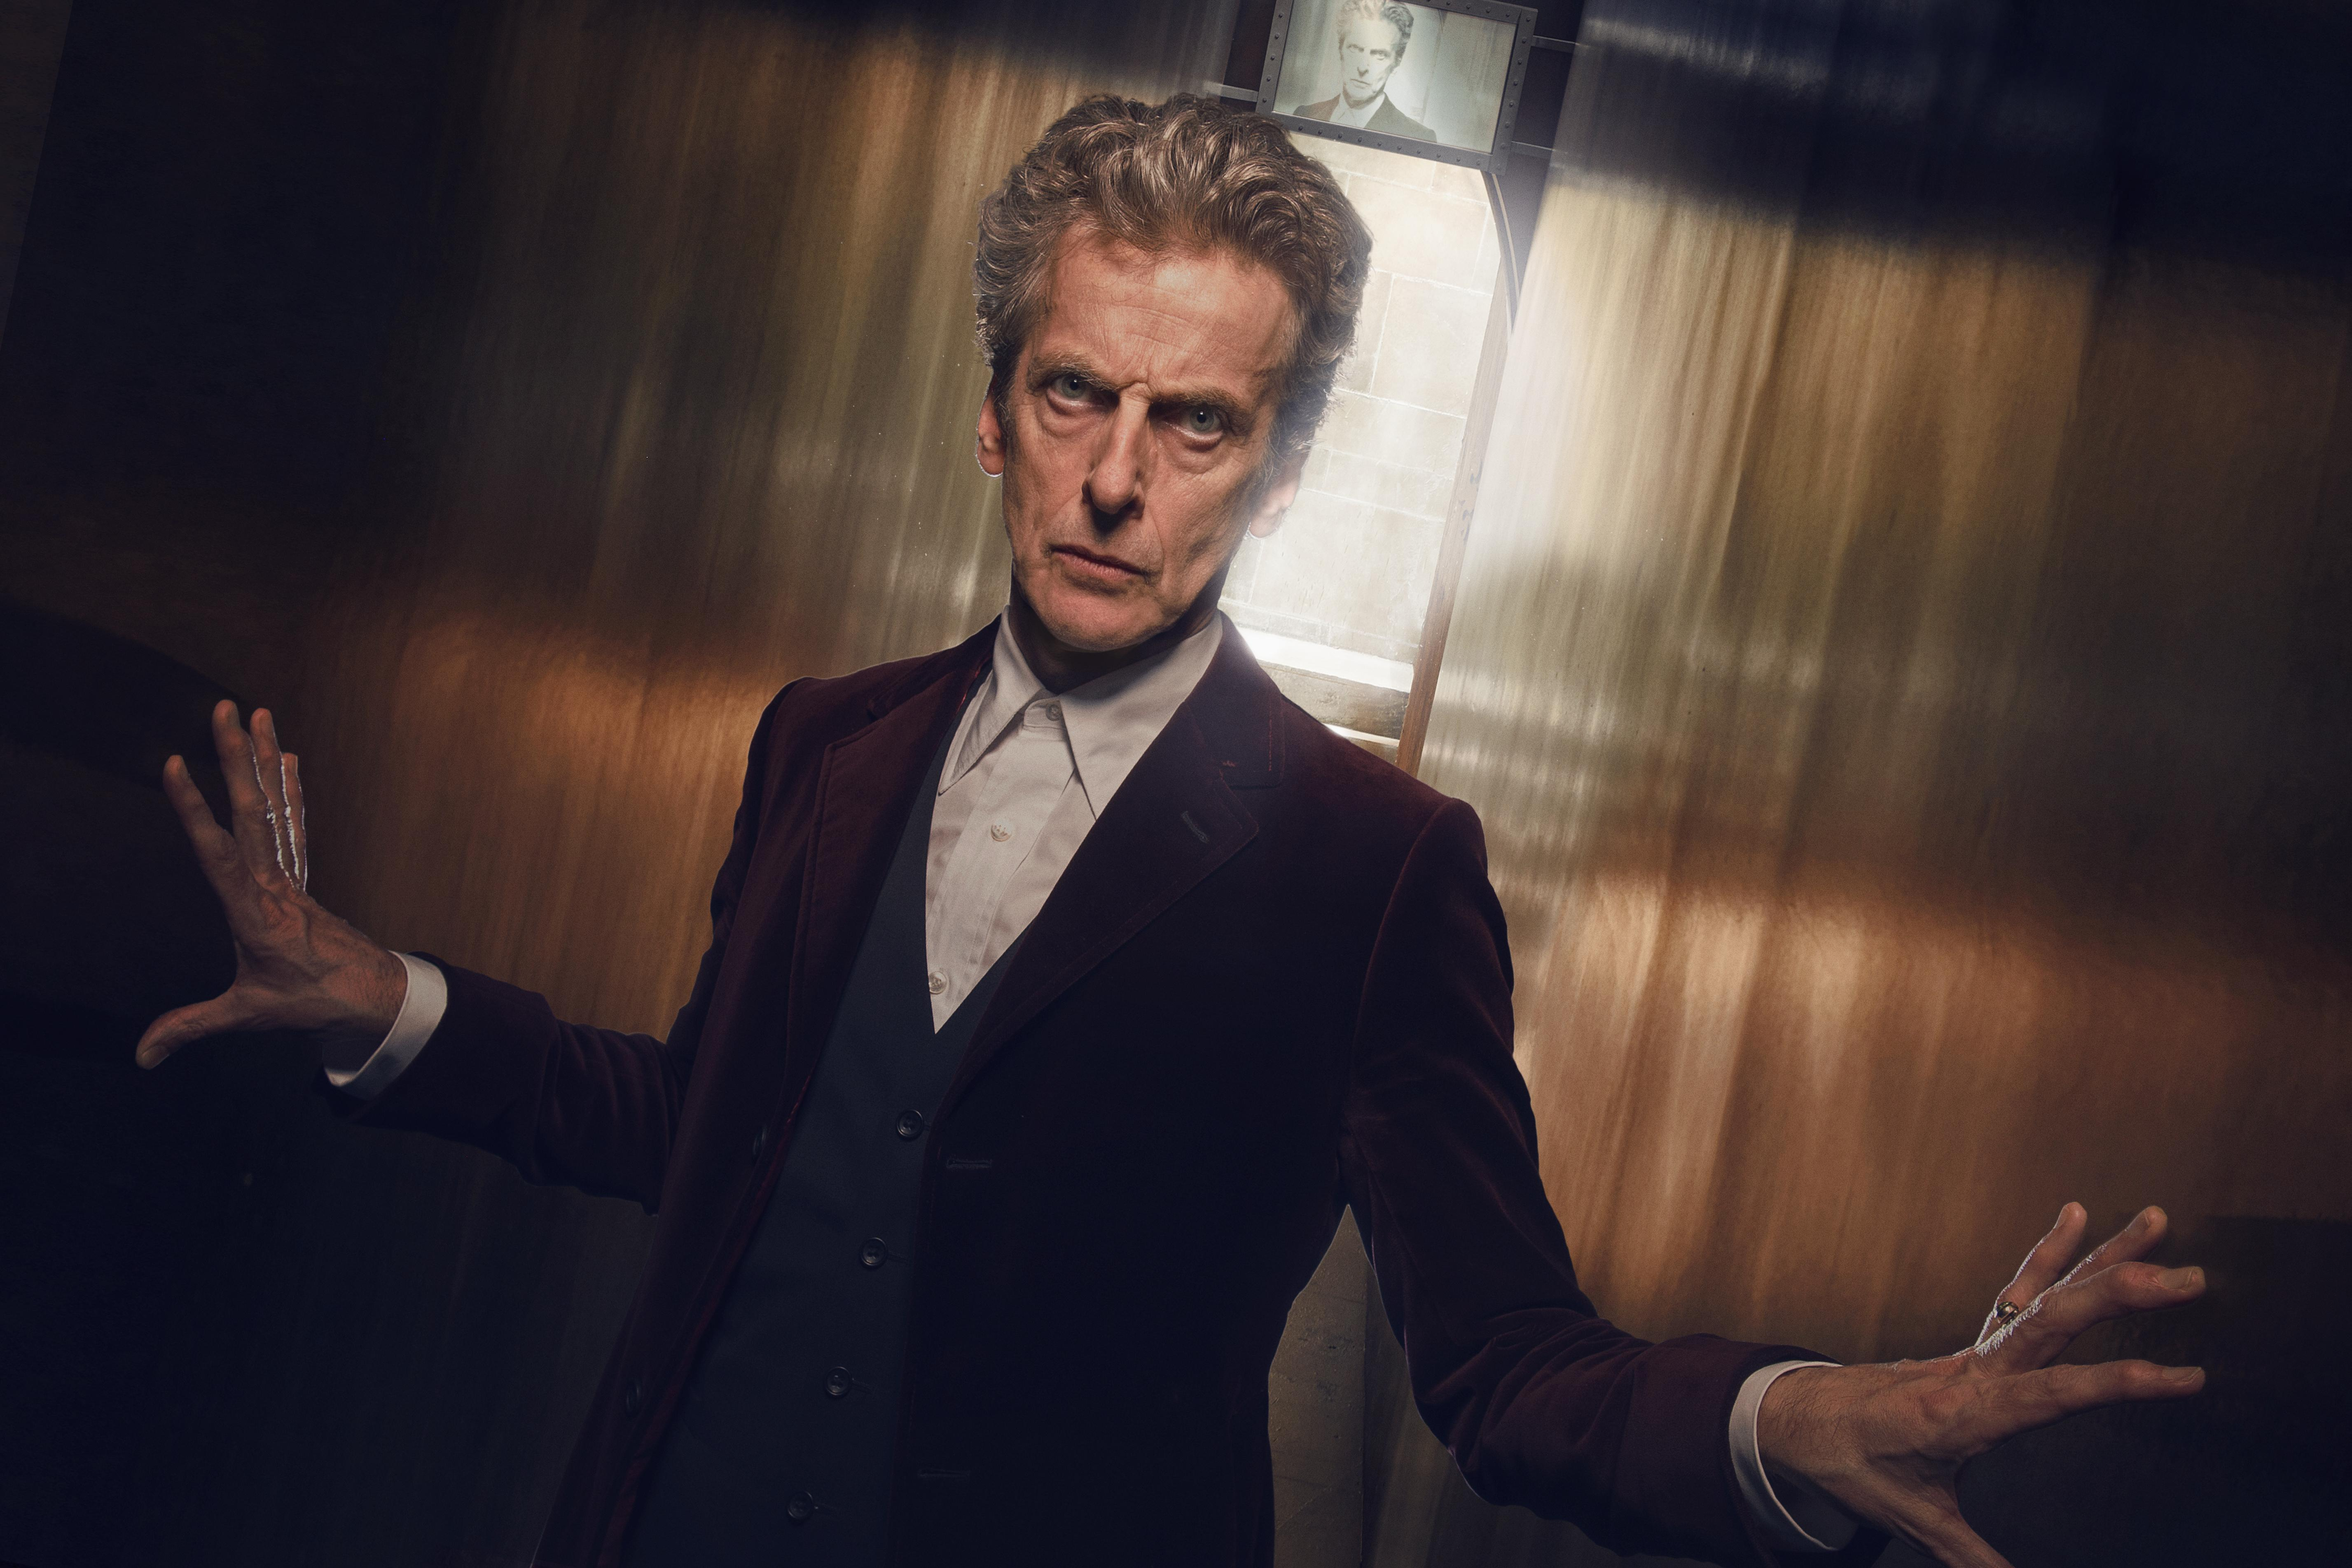 Doctor Who Season 10 release date